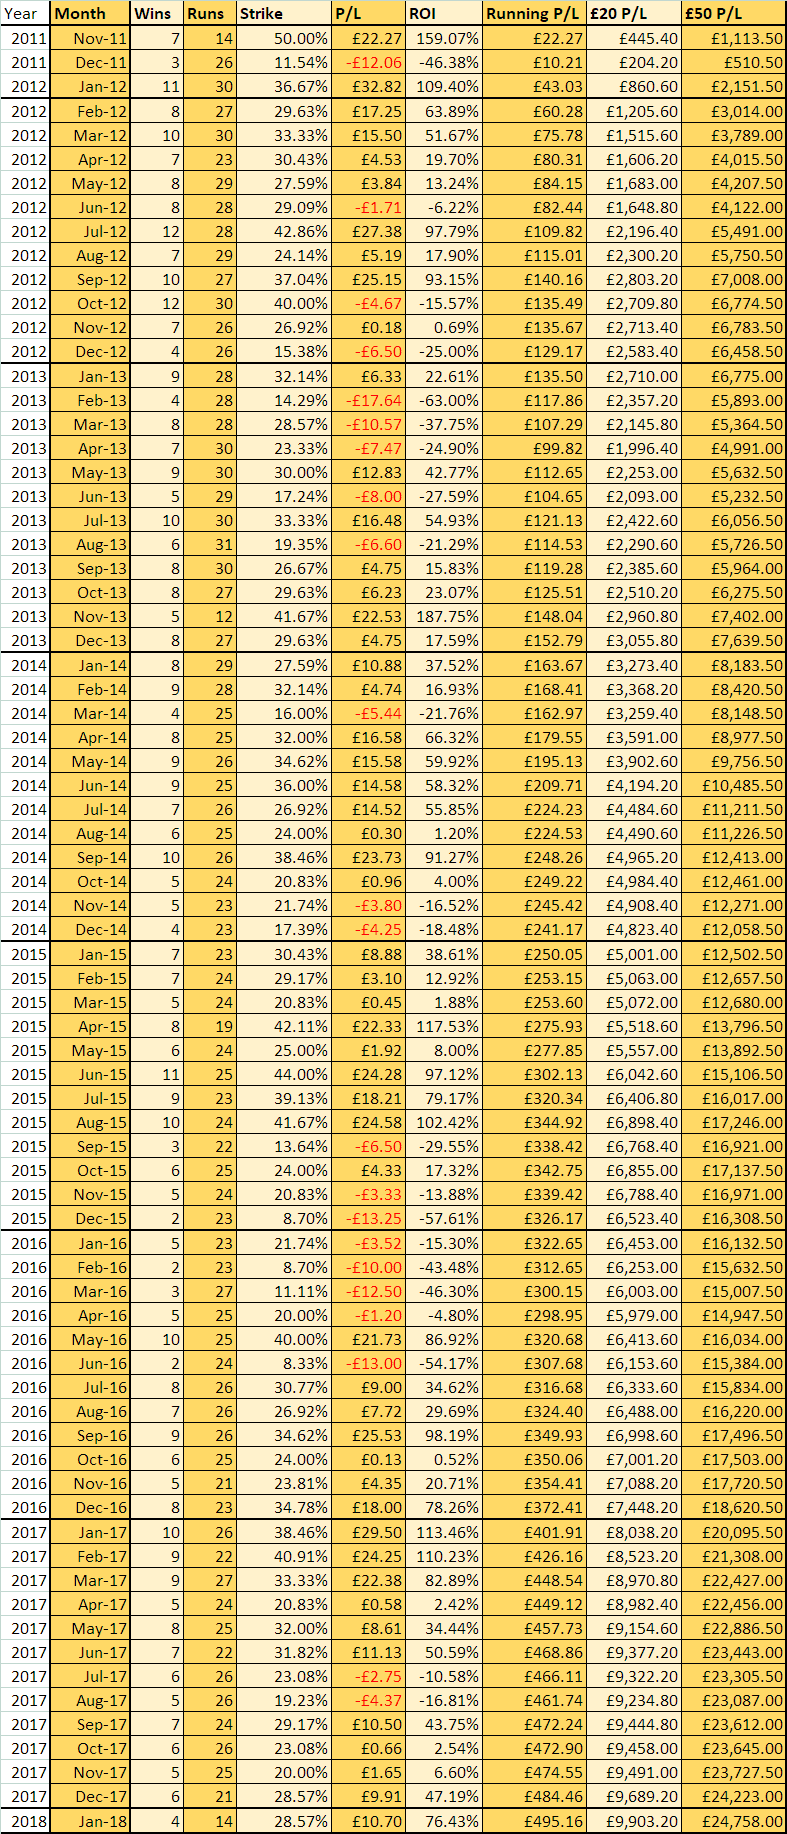 Month by month performance breakdown for Stat of the Day